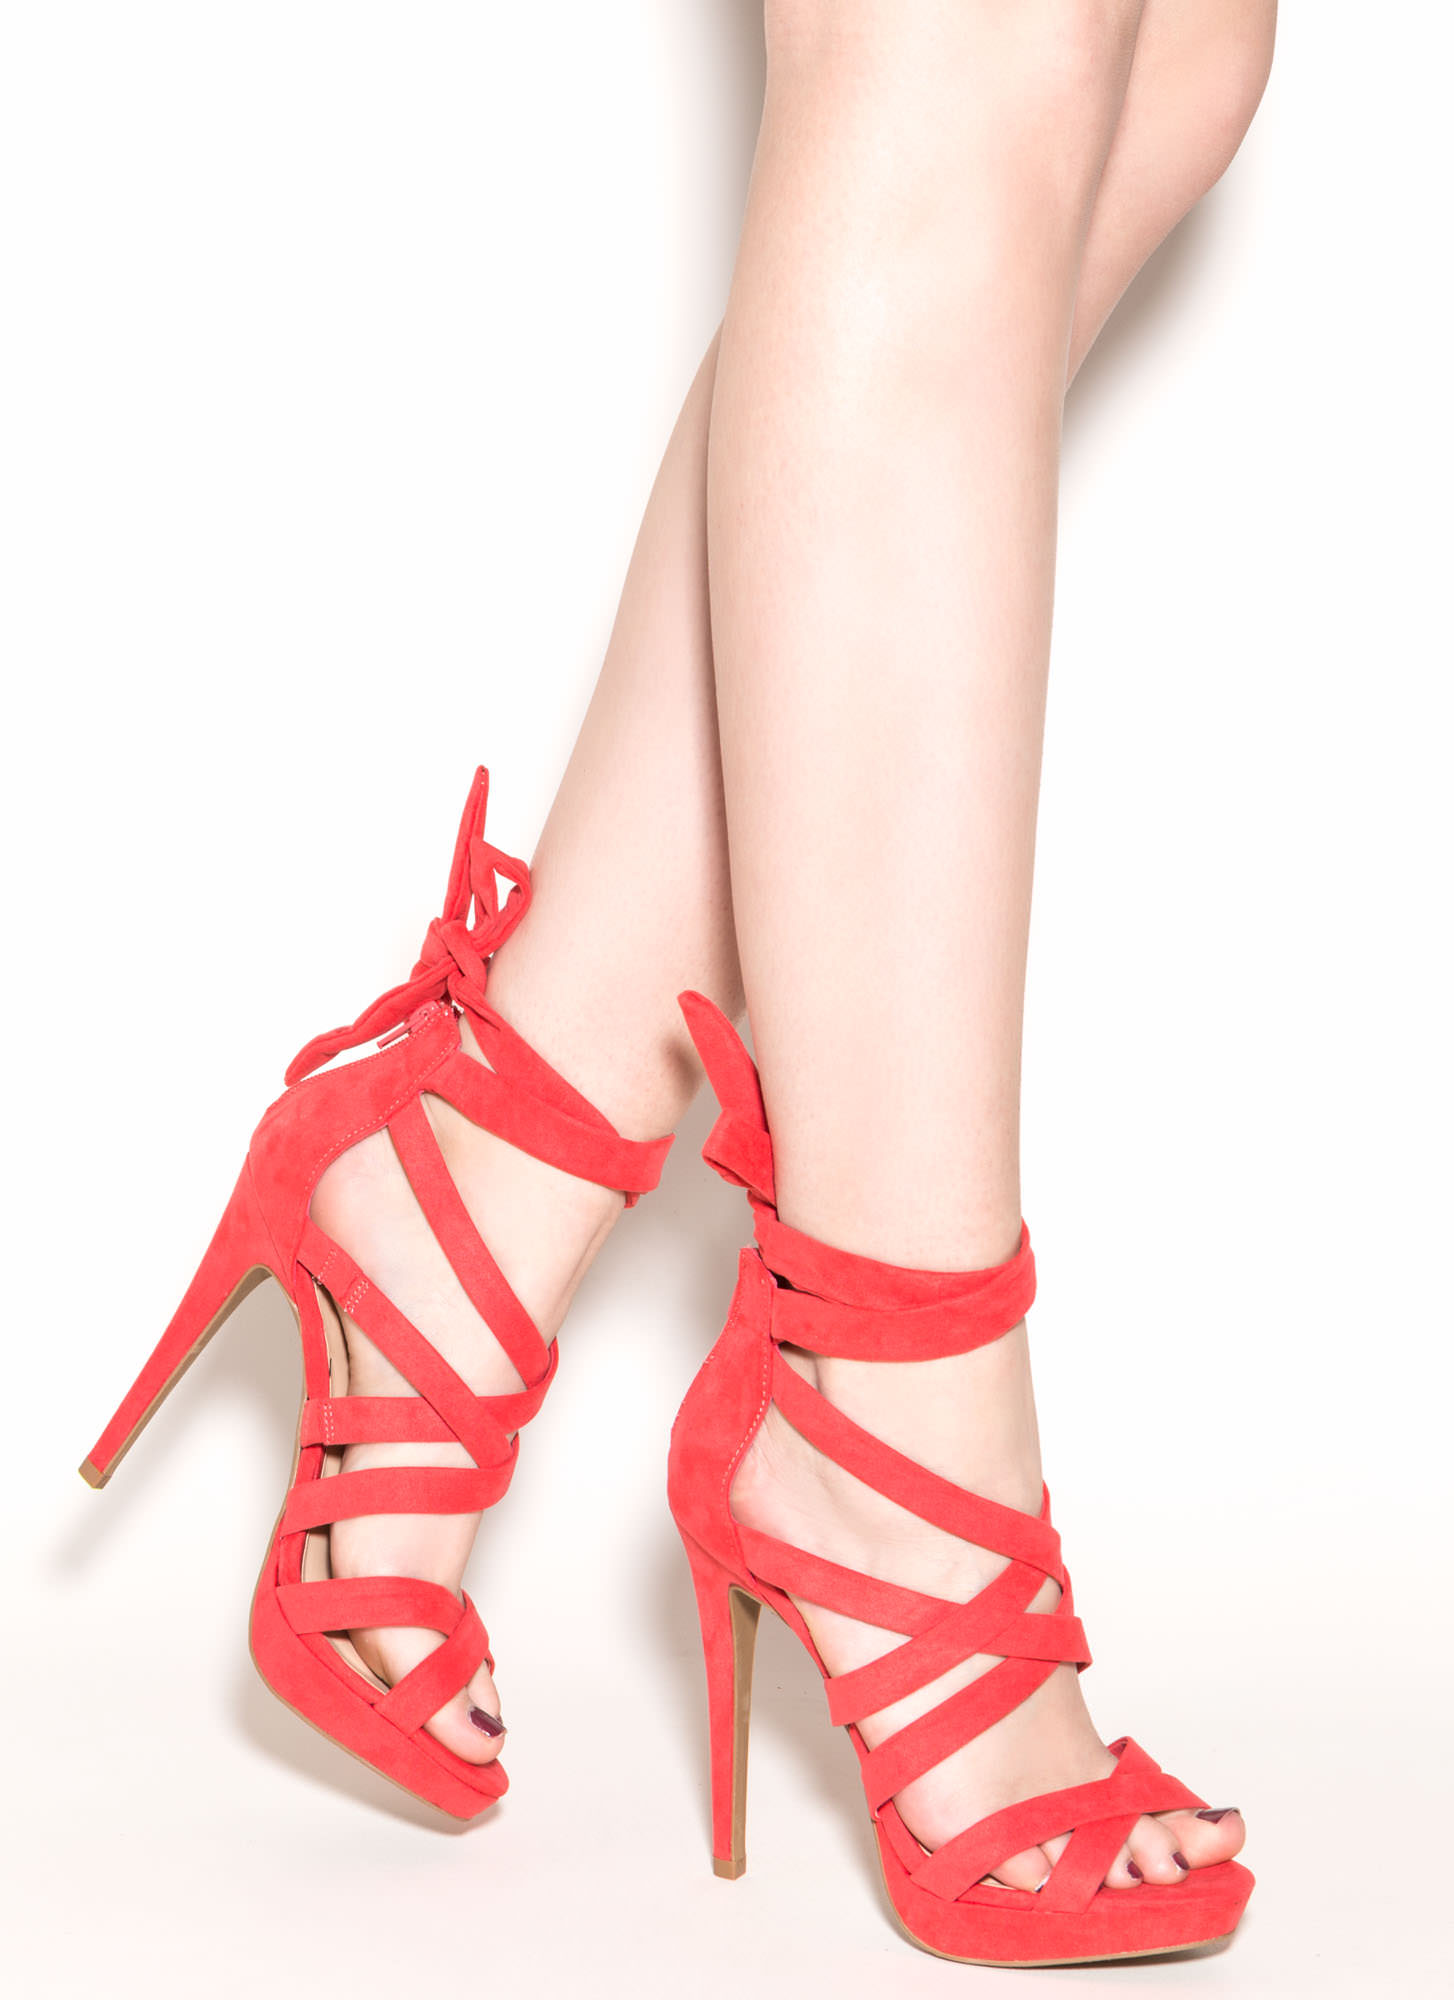 X Games Strappy Caged Faux Suede Heels HOTCORAL